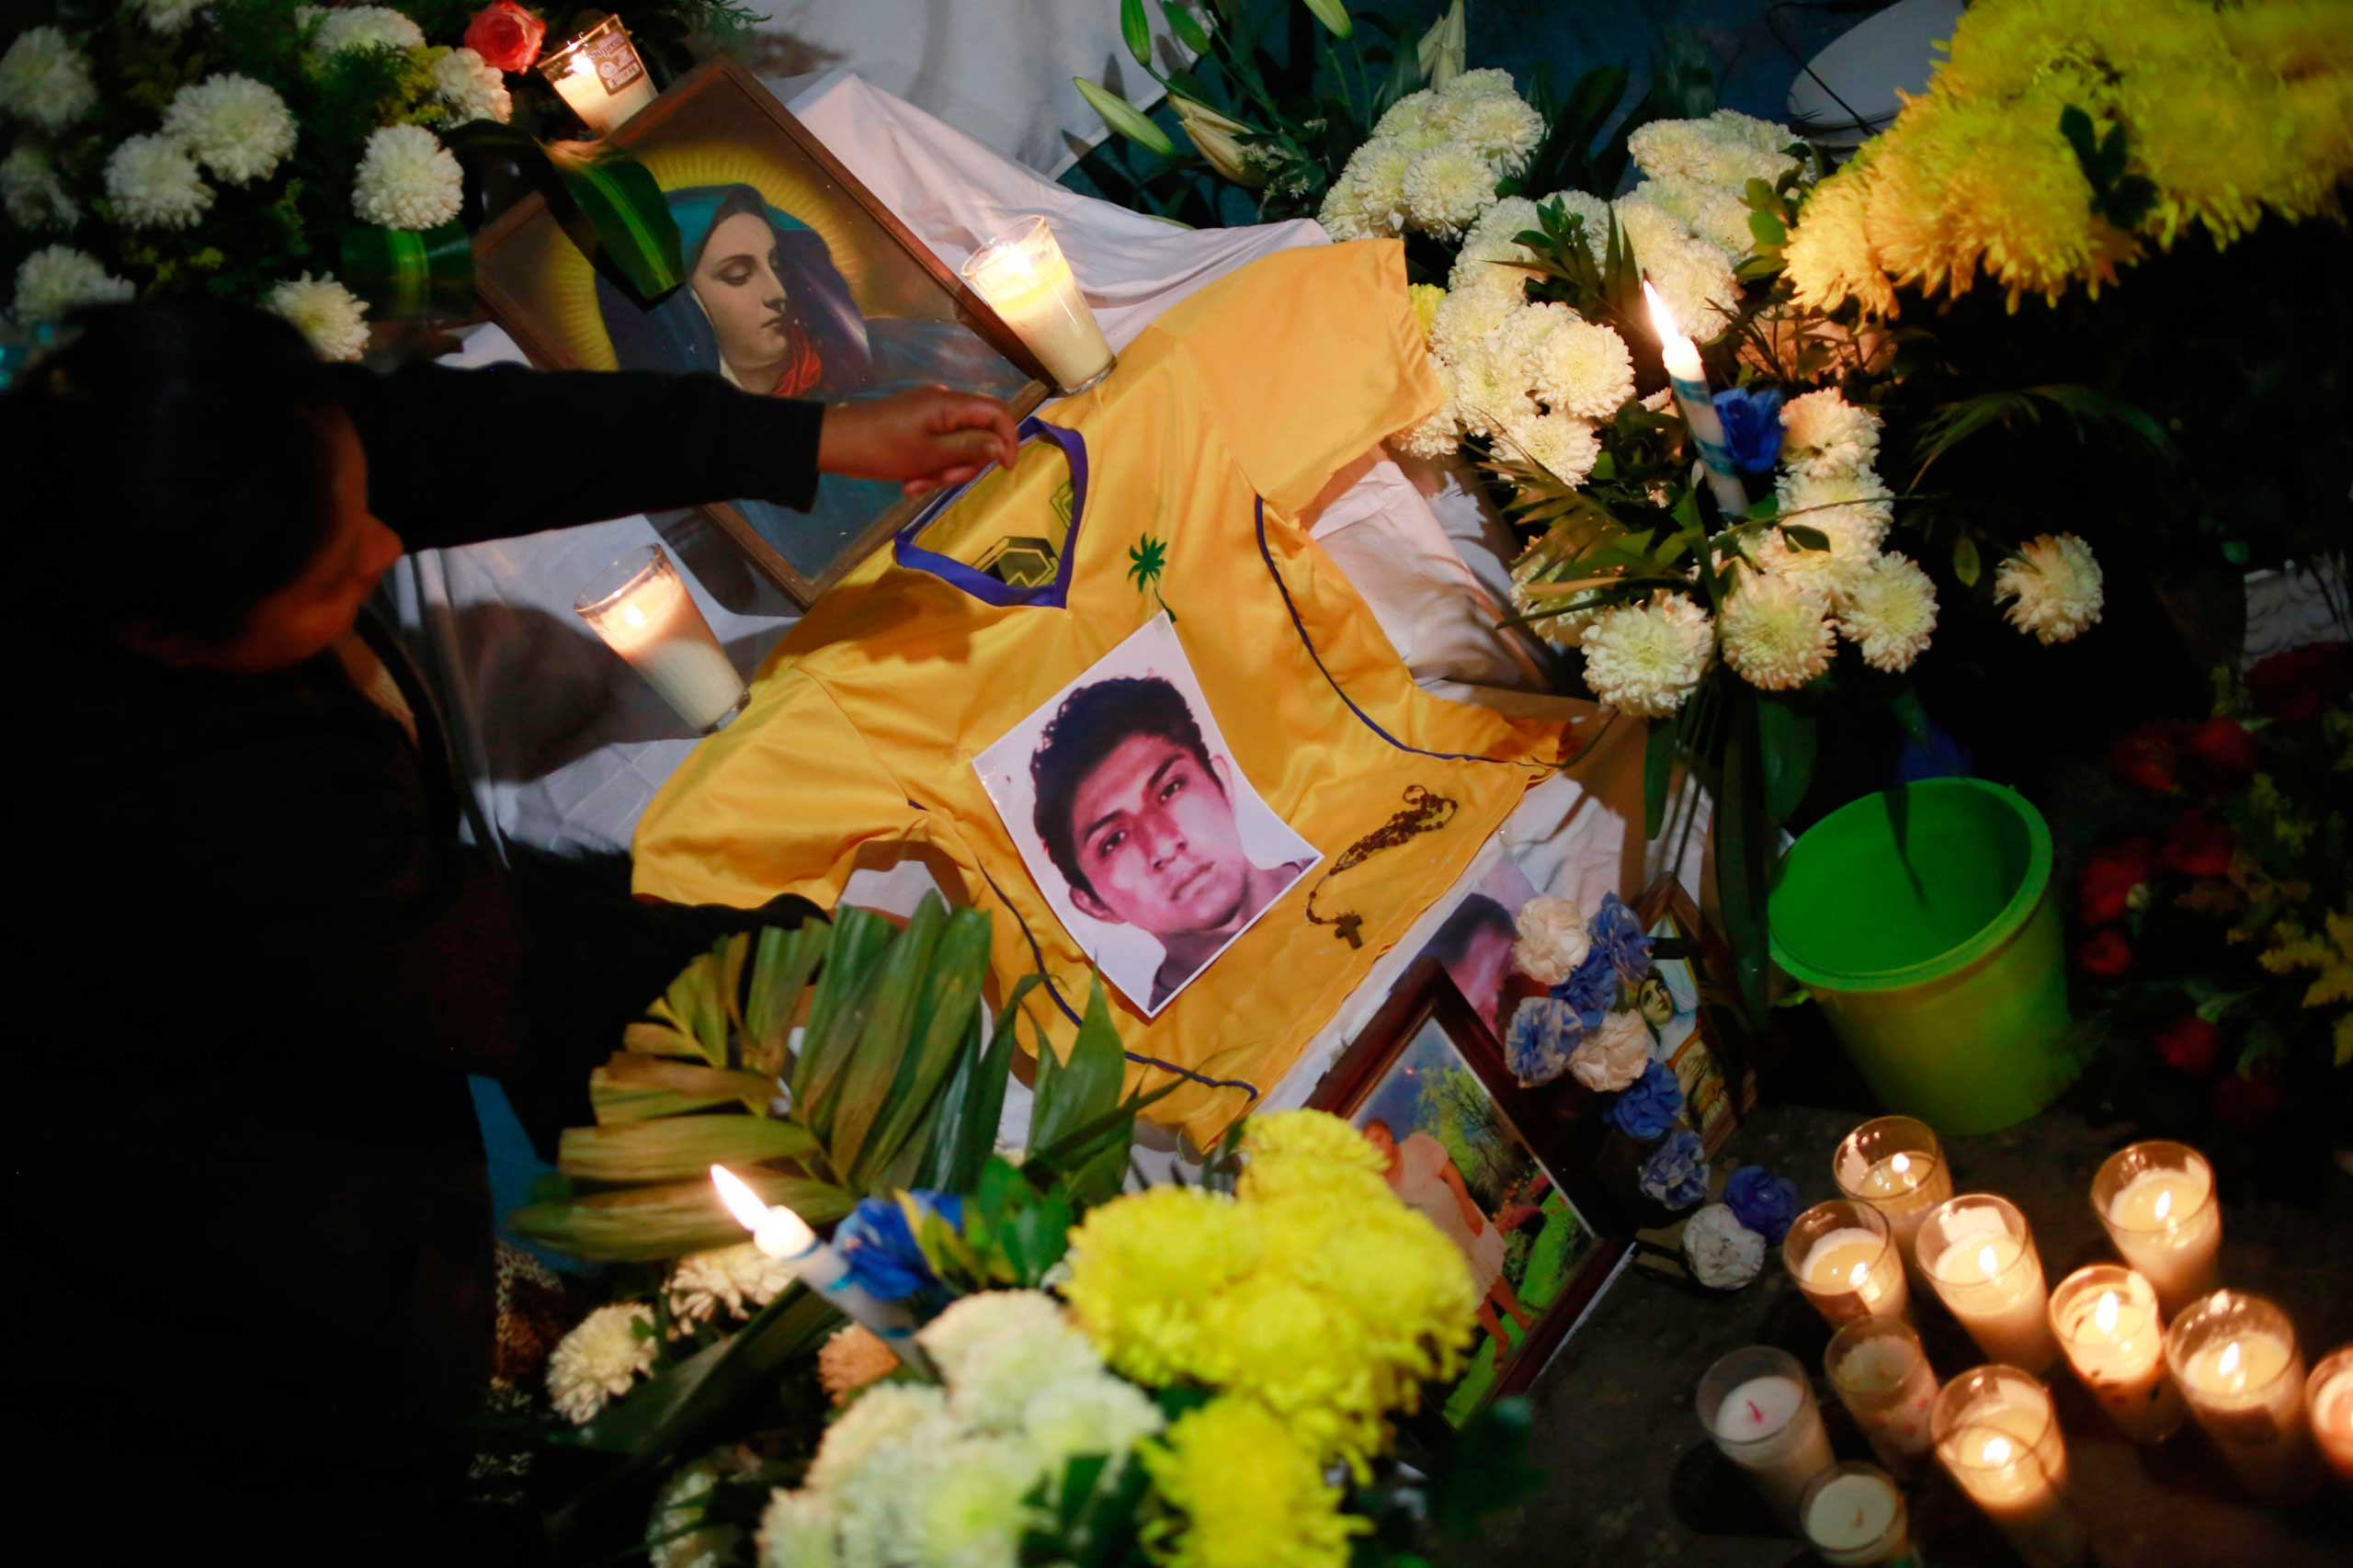 A photo of Alexander Mora Venancio is seen at an altar in the house of his father in El Pericon, in the southern Mexican state of Guerrero, Dec. 6, 2014.